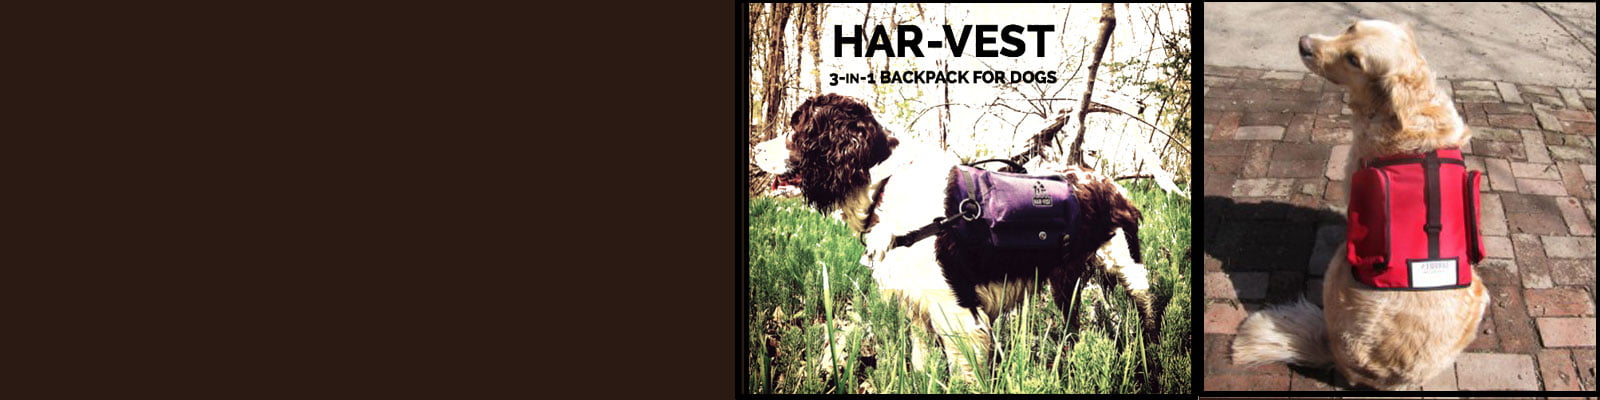 Home of the Har-Vest®